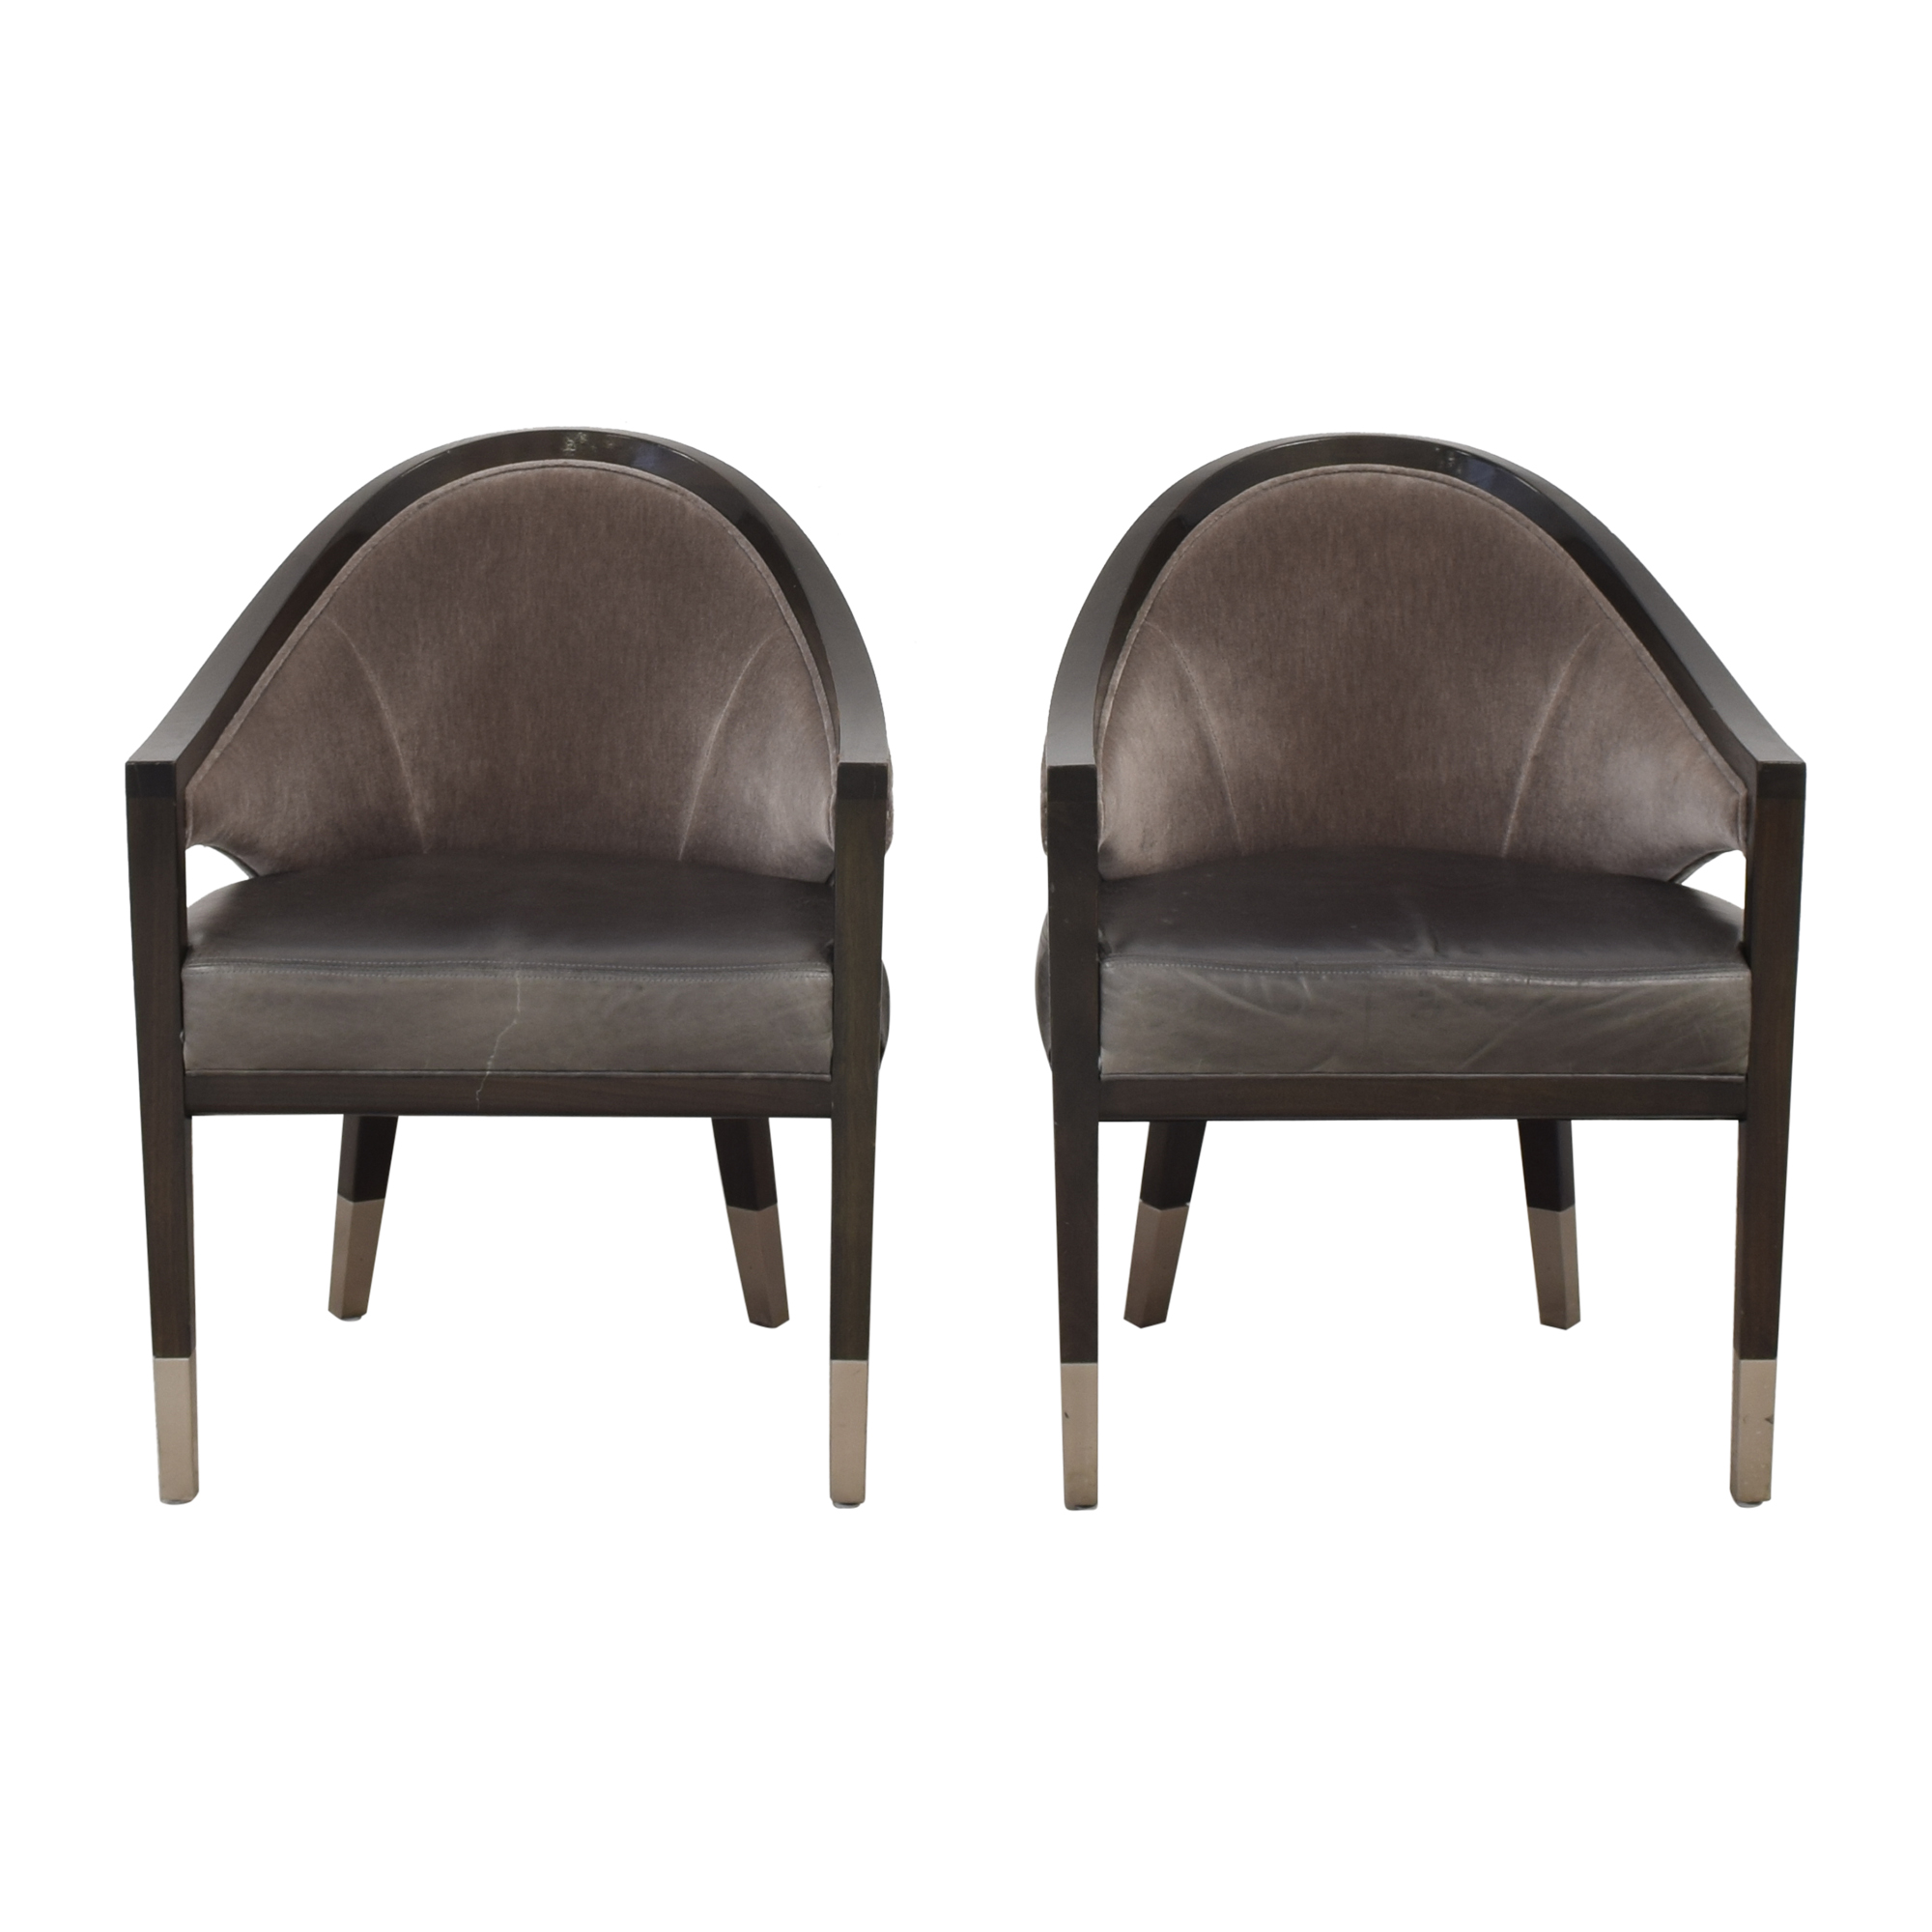 Allied Form Works Allied Works Eleven Madison Park Dining Room Chairs